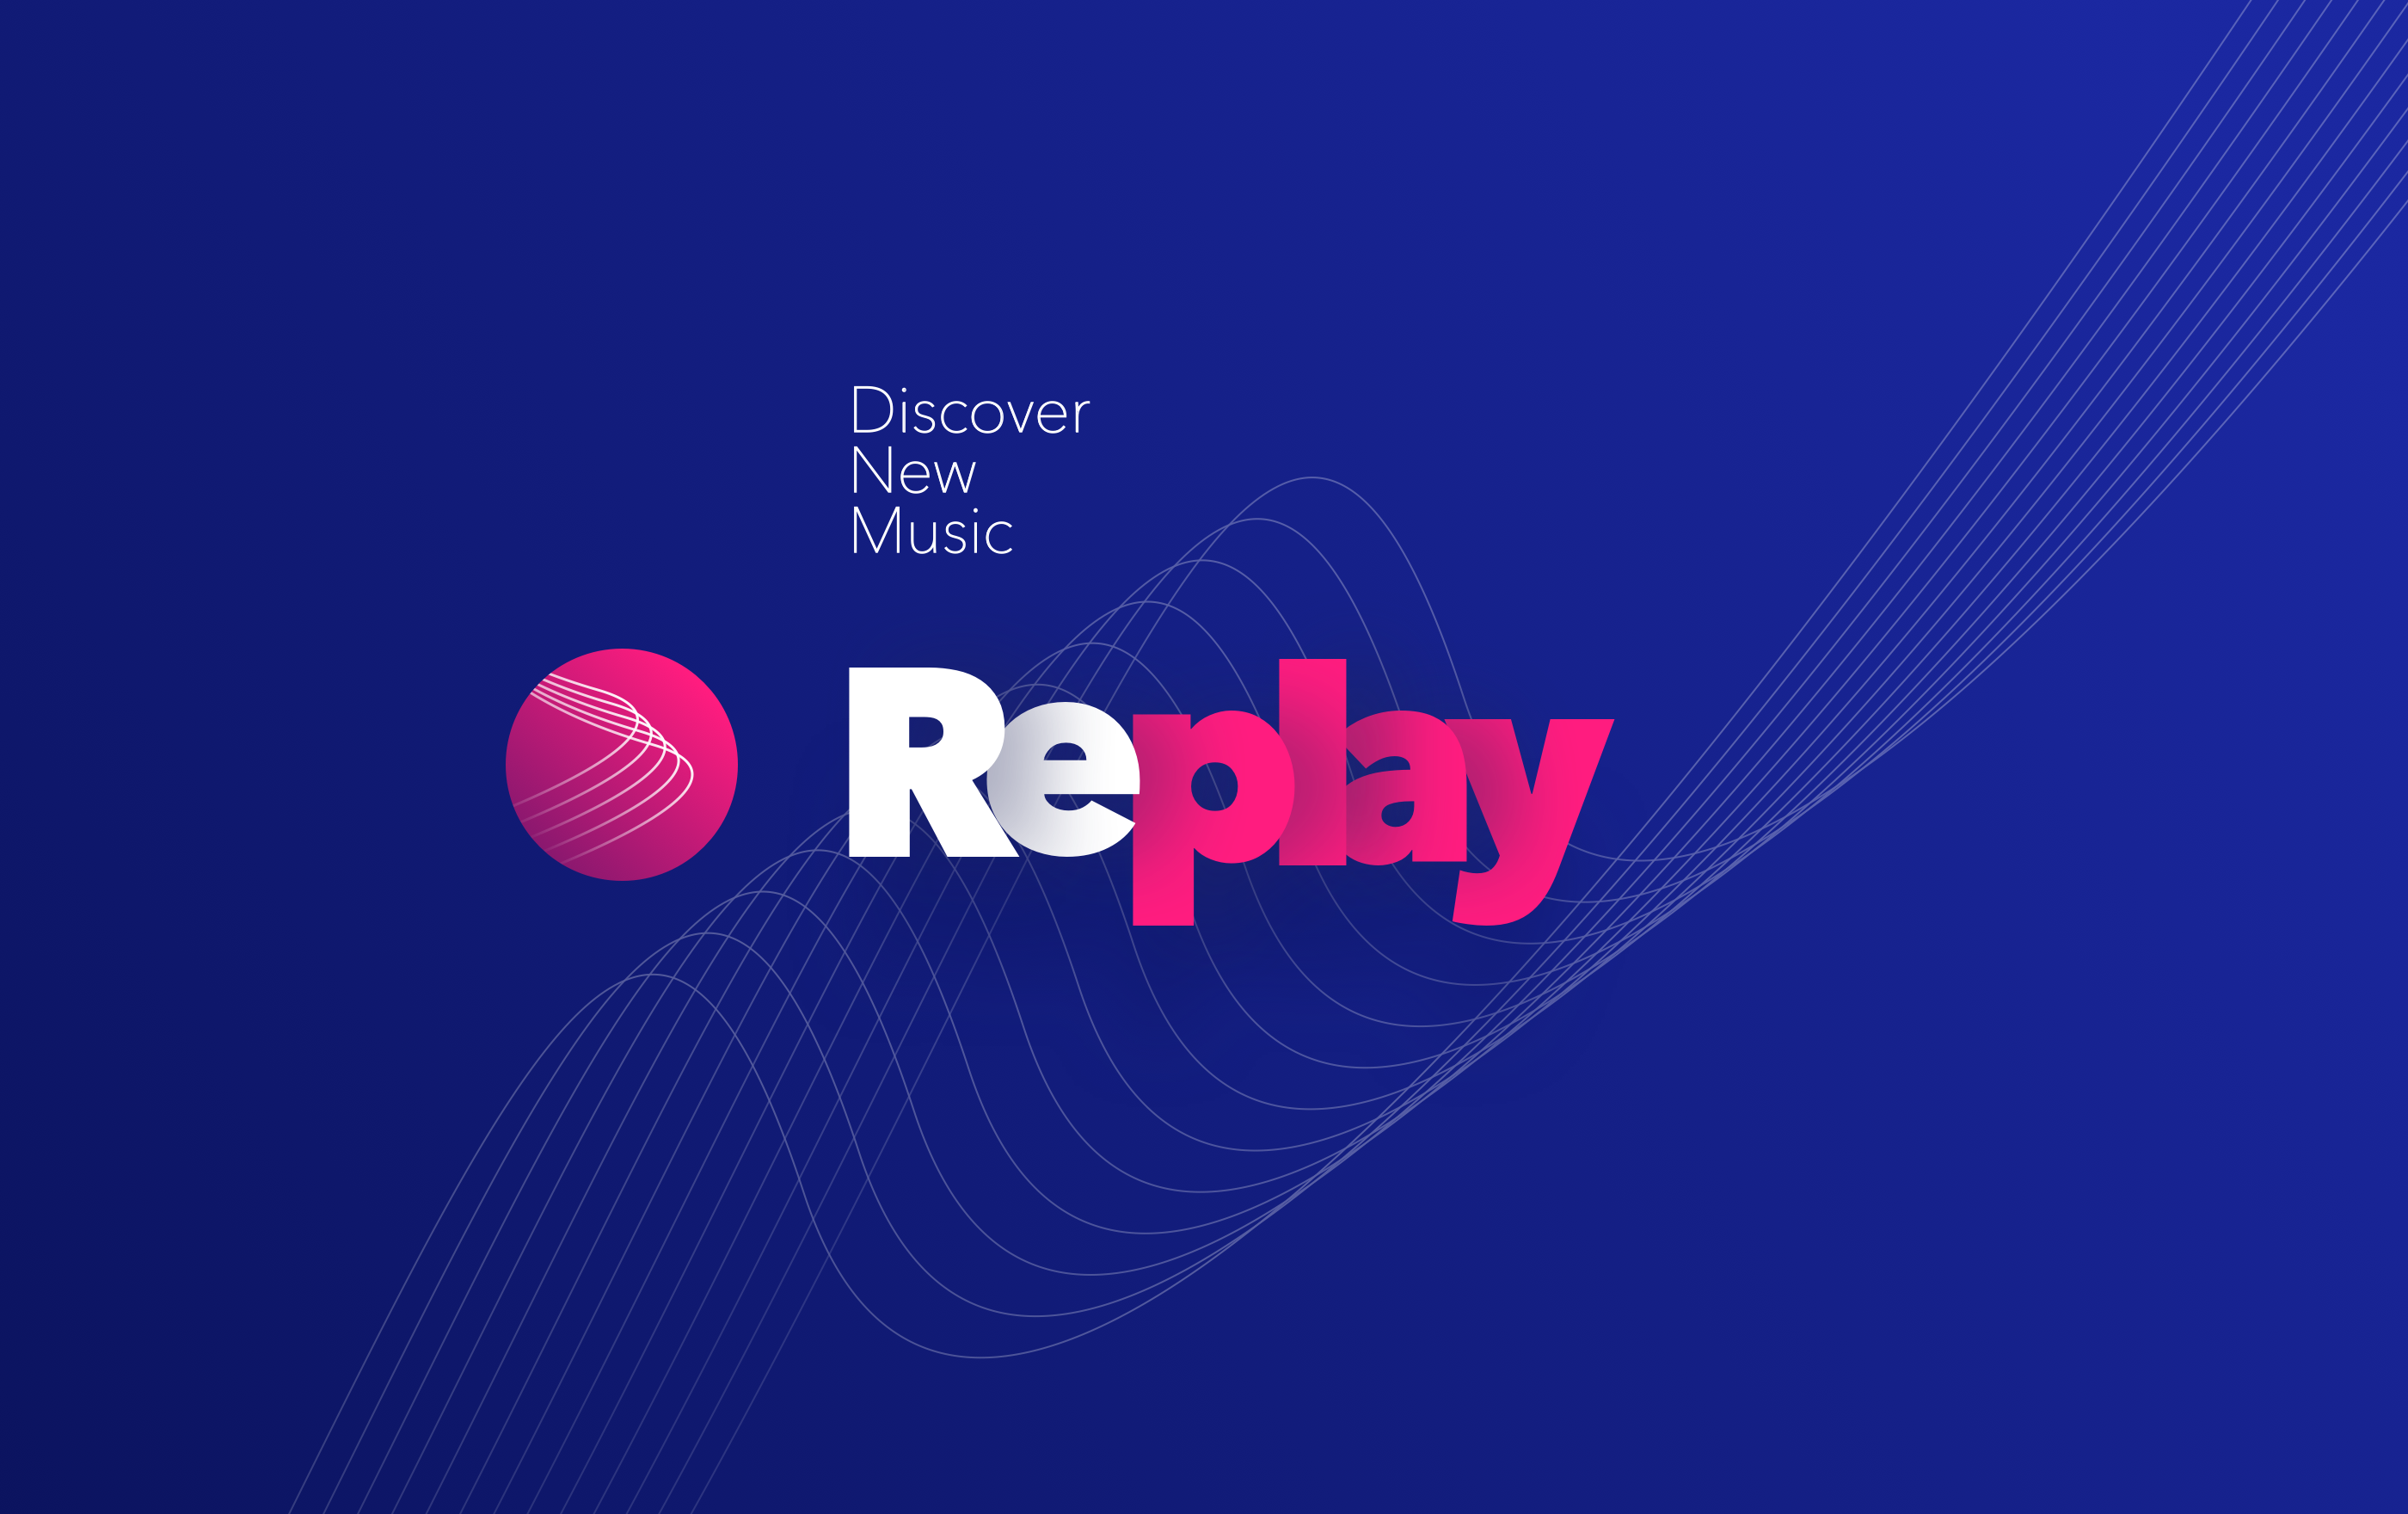 Replay finds new music and sends it to your ears.